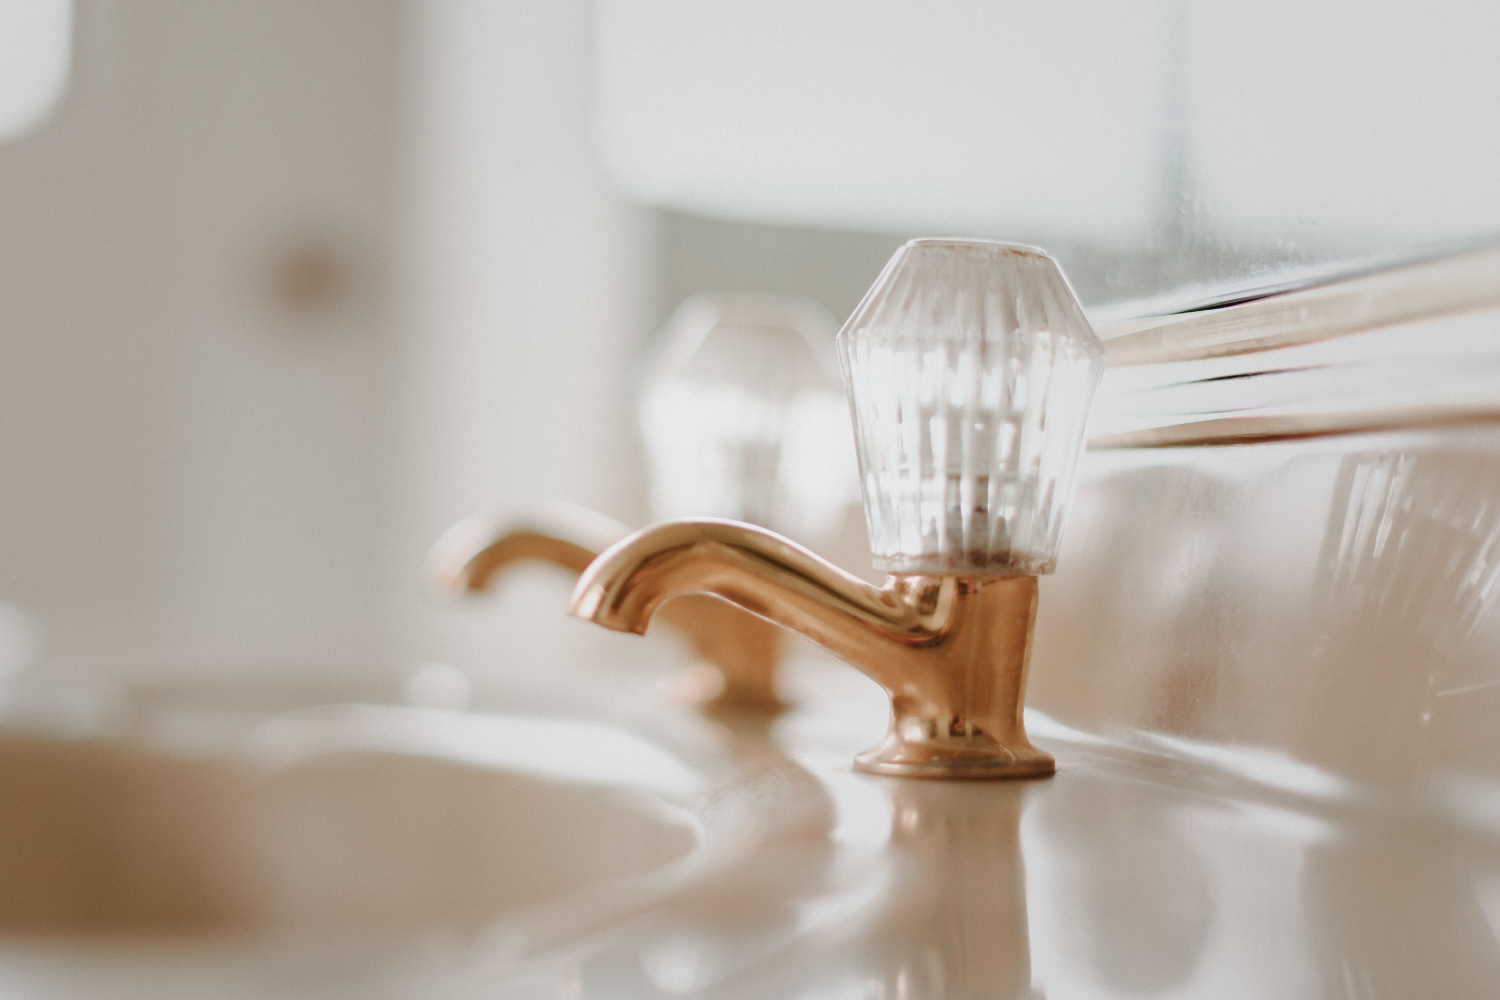 An image of a faucet used to demonstrate powder room ideas.